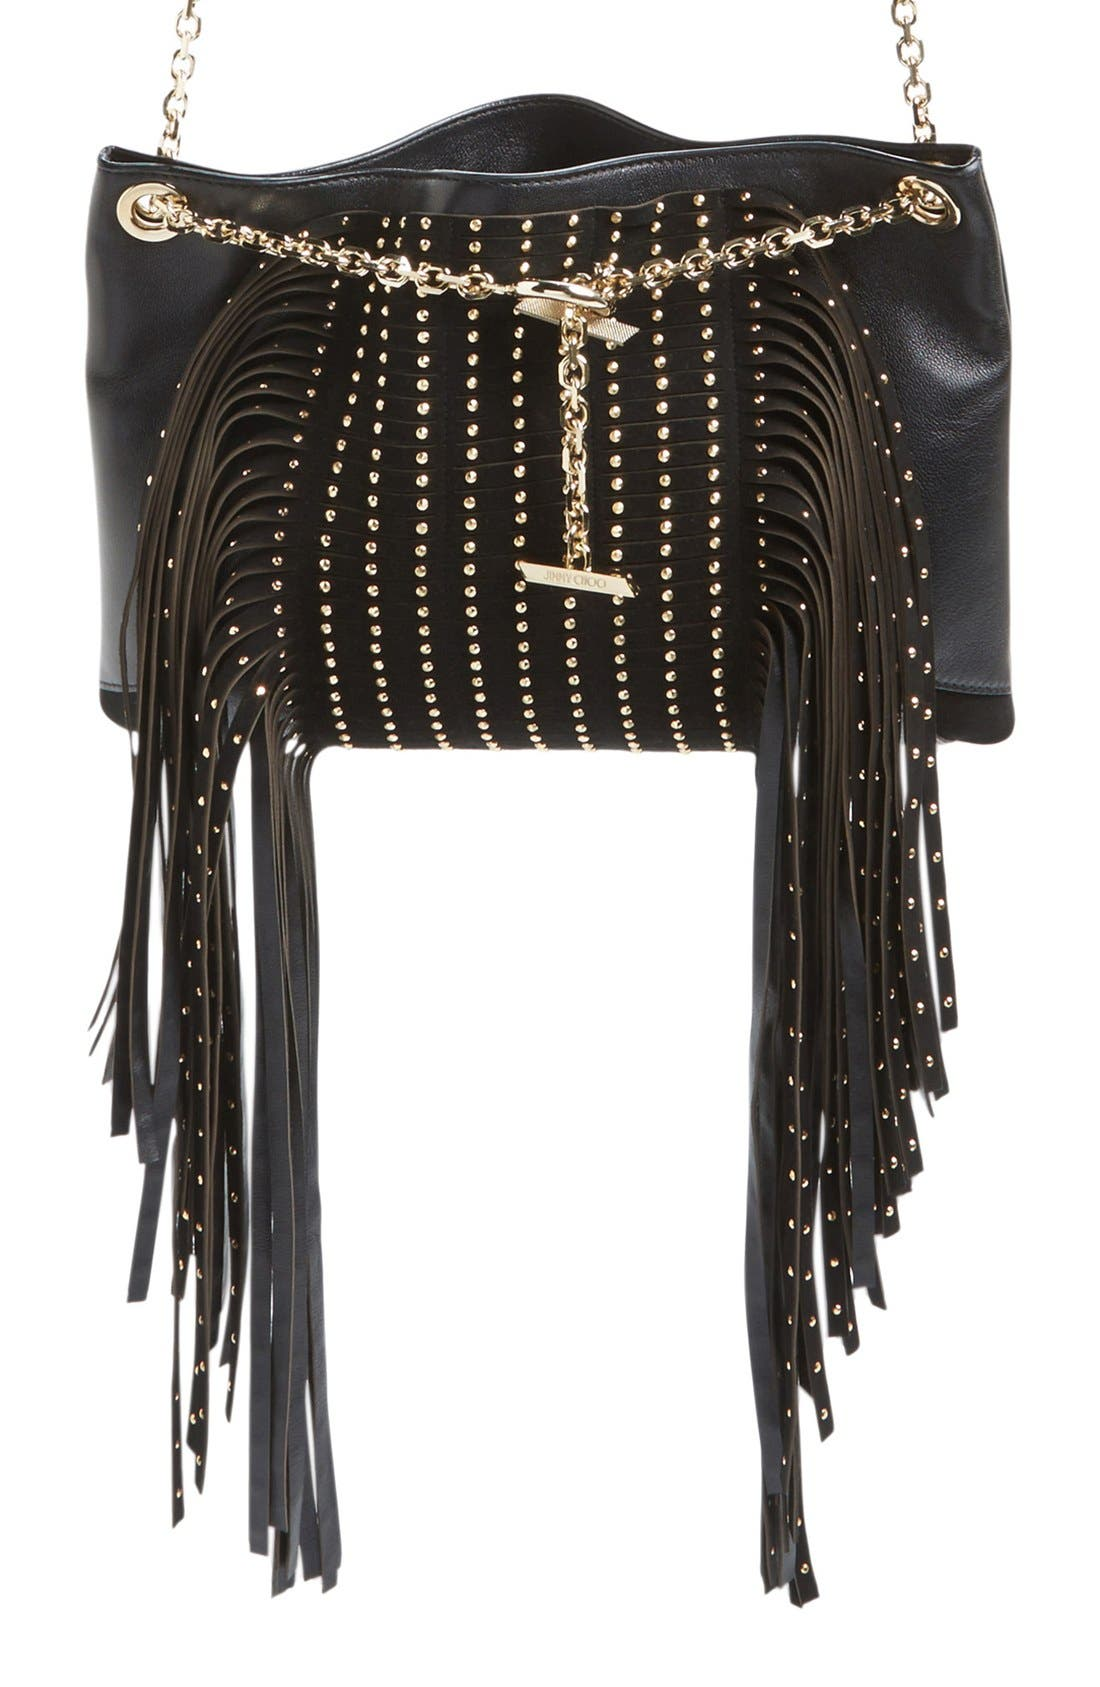 Main Image - Jimmy Choo 'Alexia' Fringe Crossbody Bag